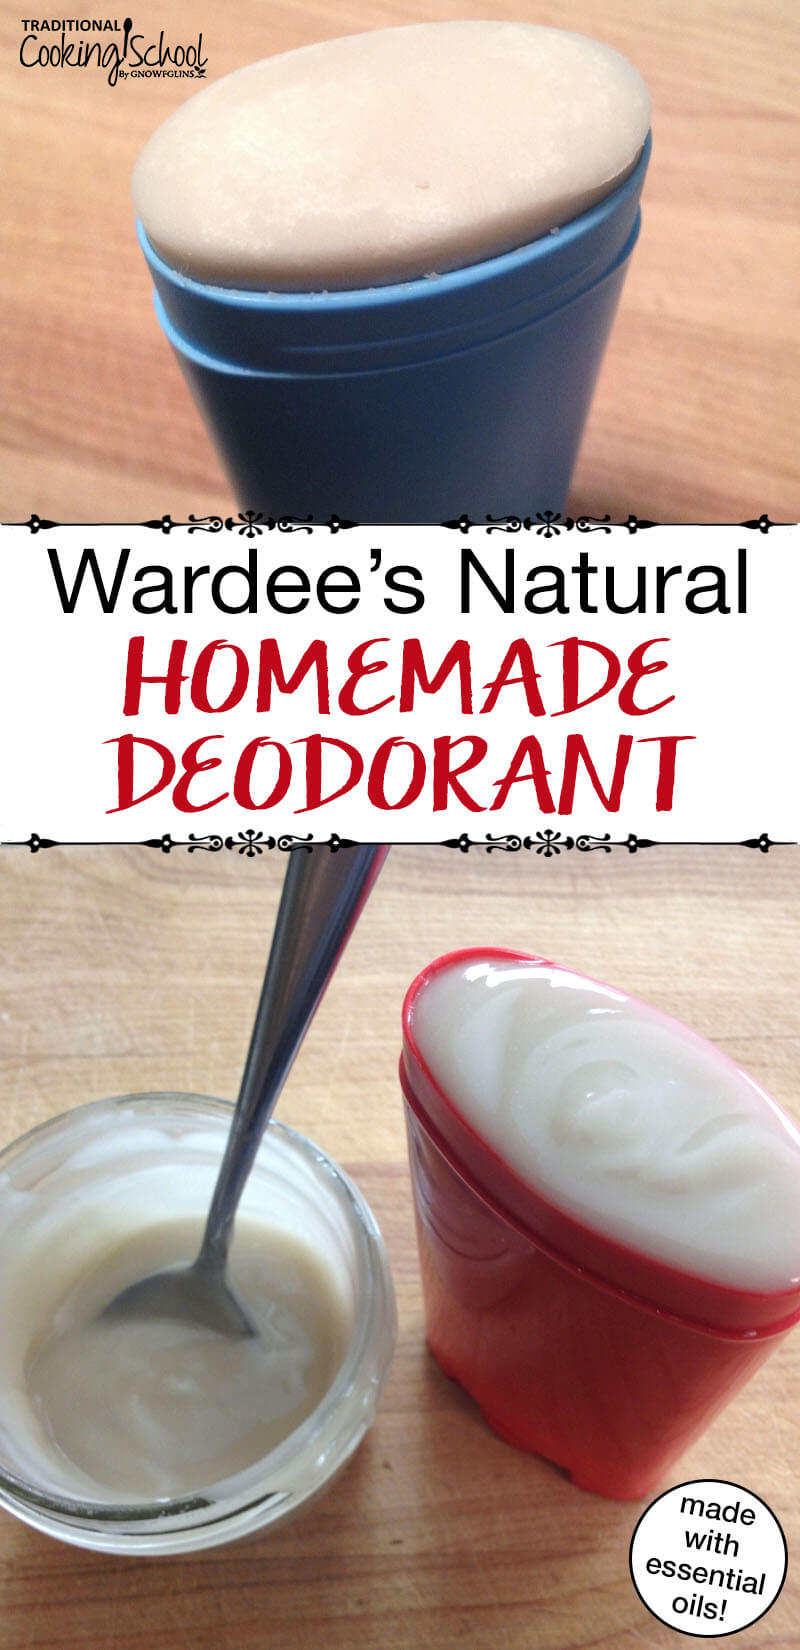 Wardee's Natural Homemade Deodorant | DIY deodorant recipes... it often takes several attempts to come up with a winner. After 3 tries, I finally came up with a natural deodorant recipe that really works! I've been using this recipe for 3 years! | TraditionalCookingSchool.com